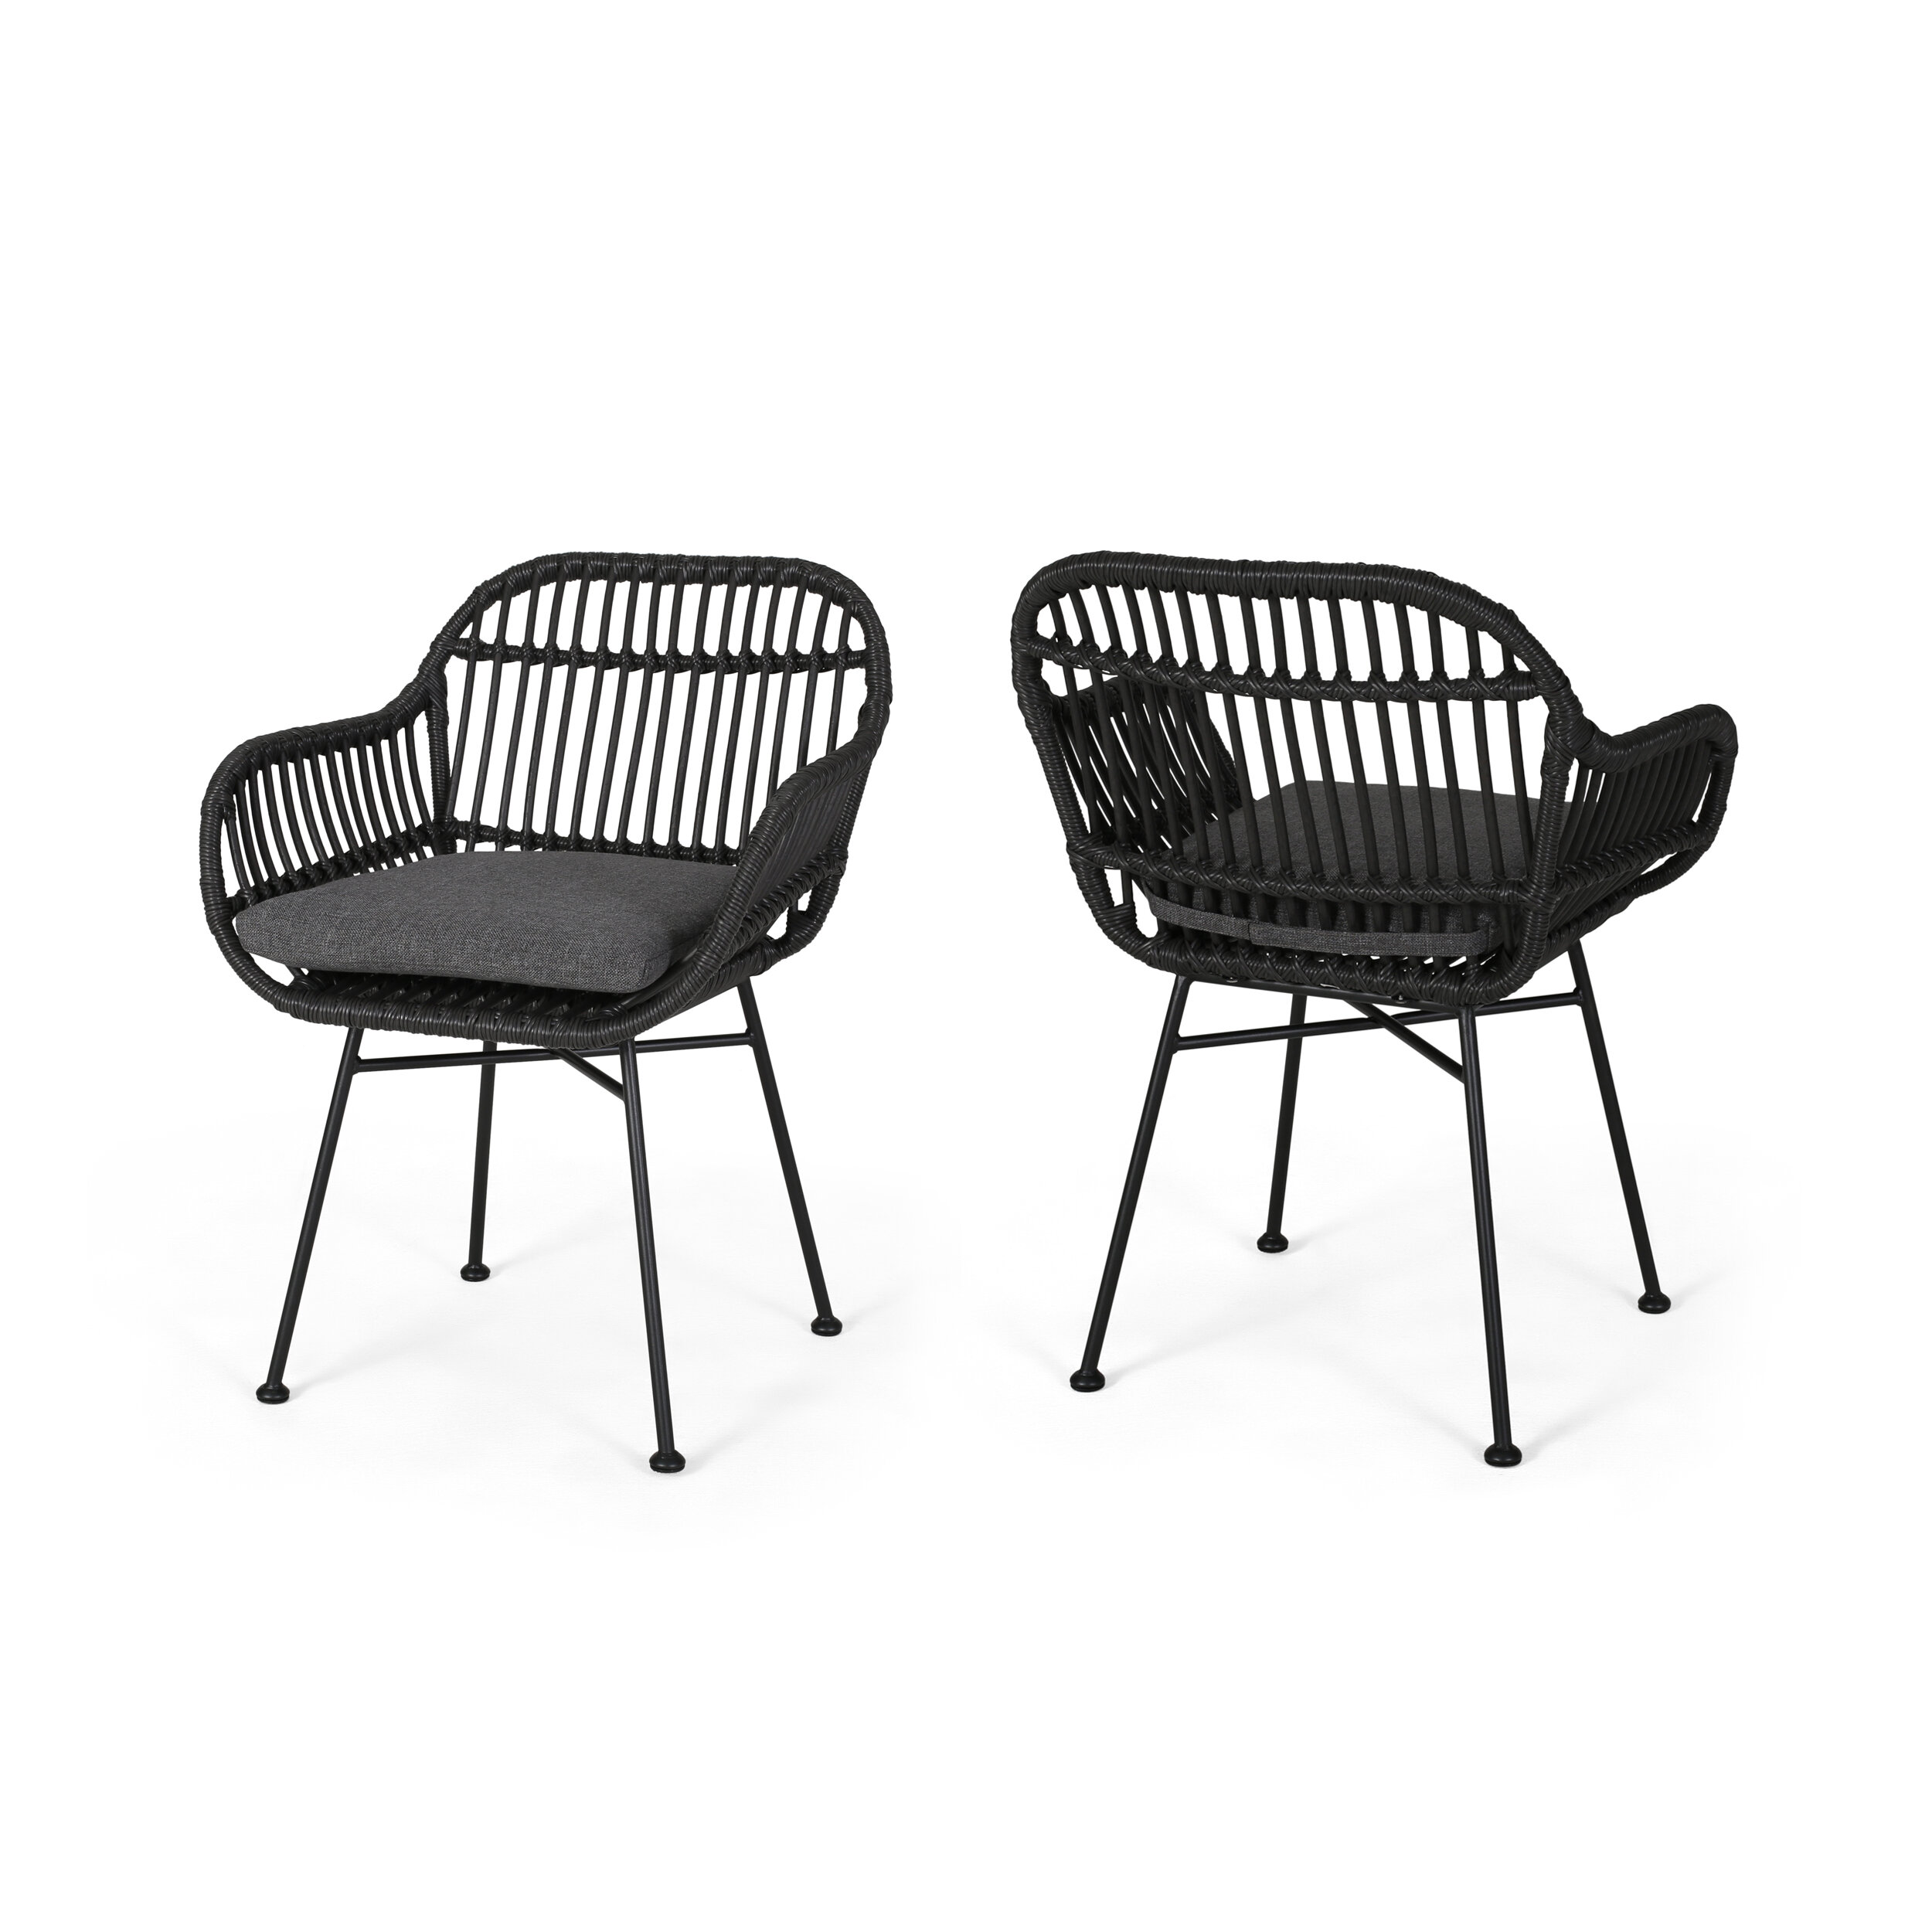 Maspeth Outdoor Woven Patio Chair With